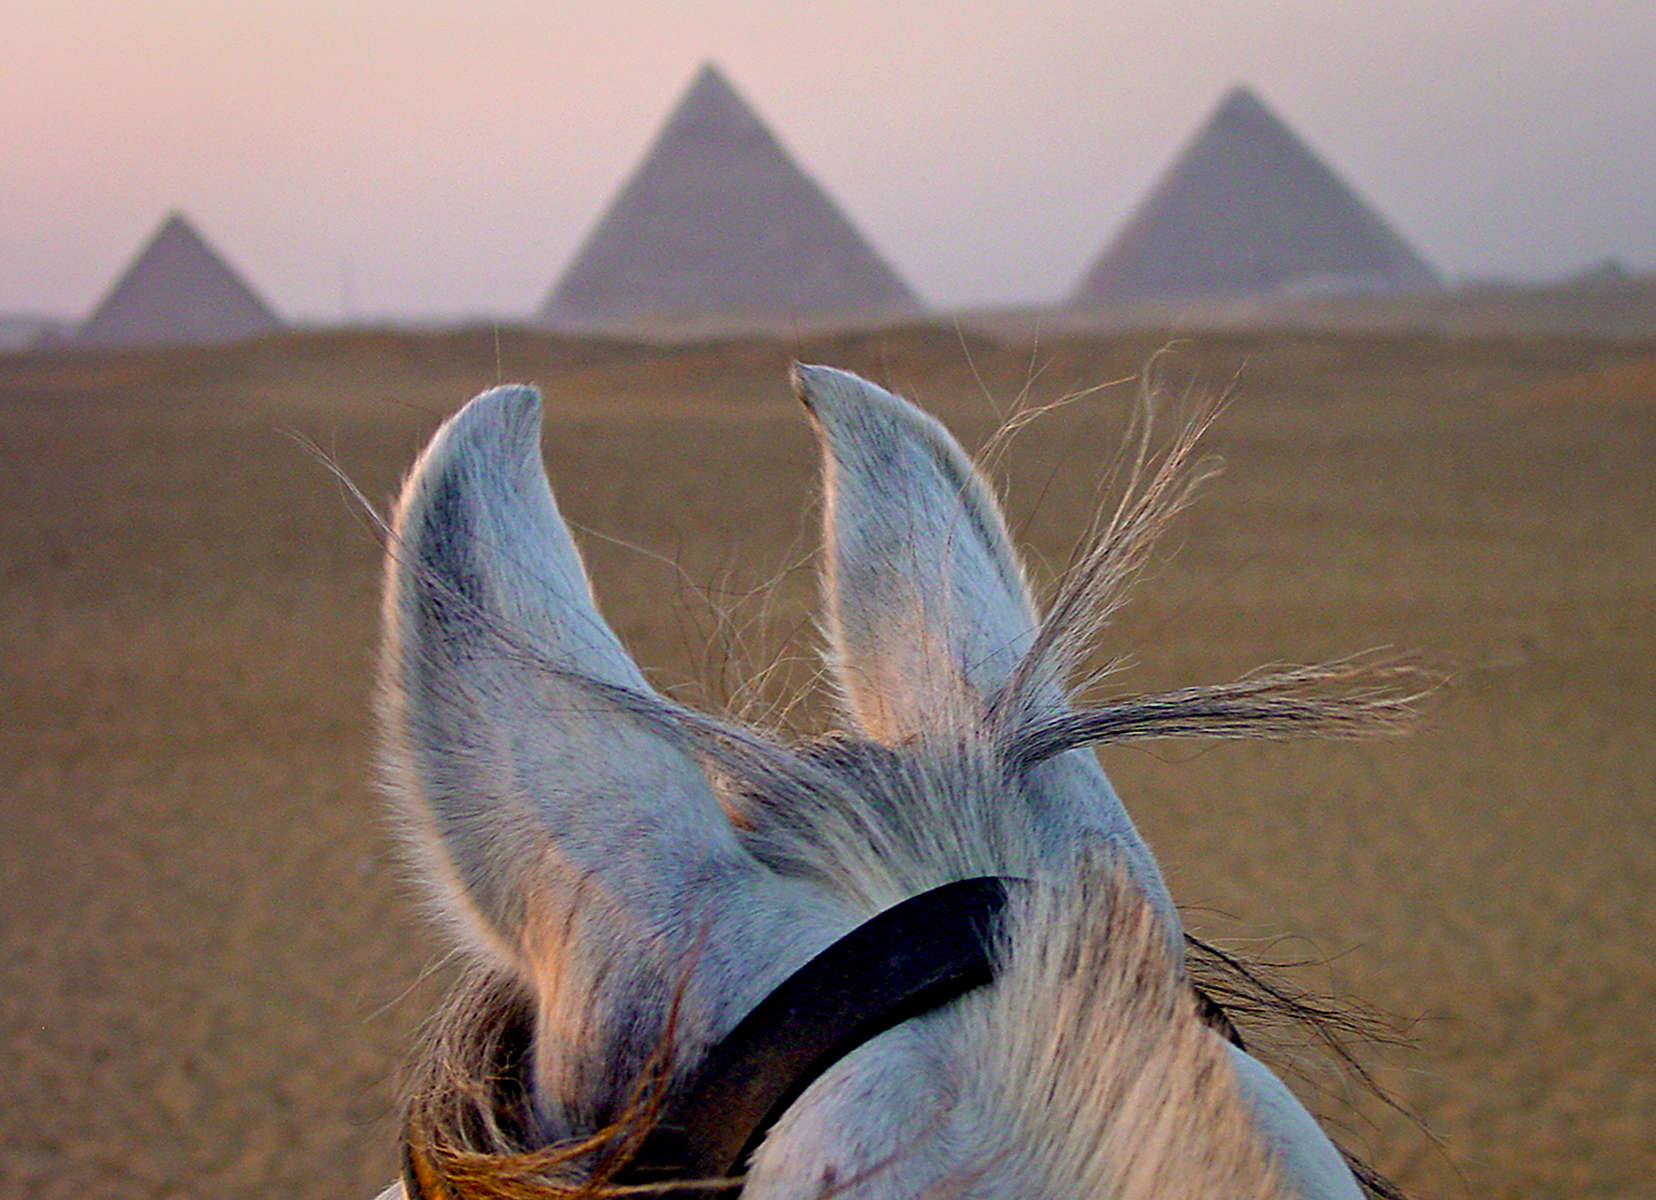 Sunset ride at the Pyramids.